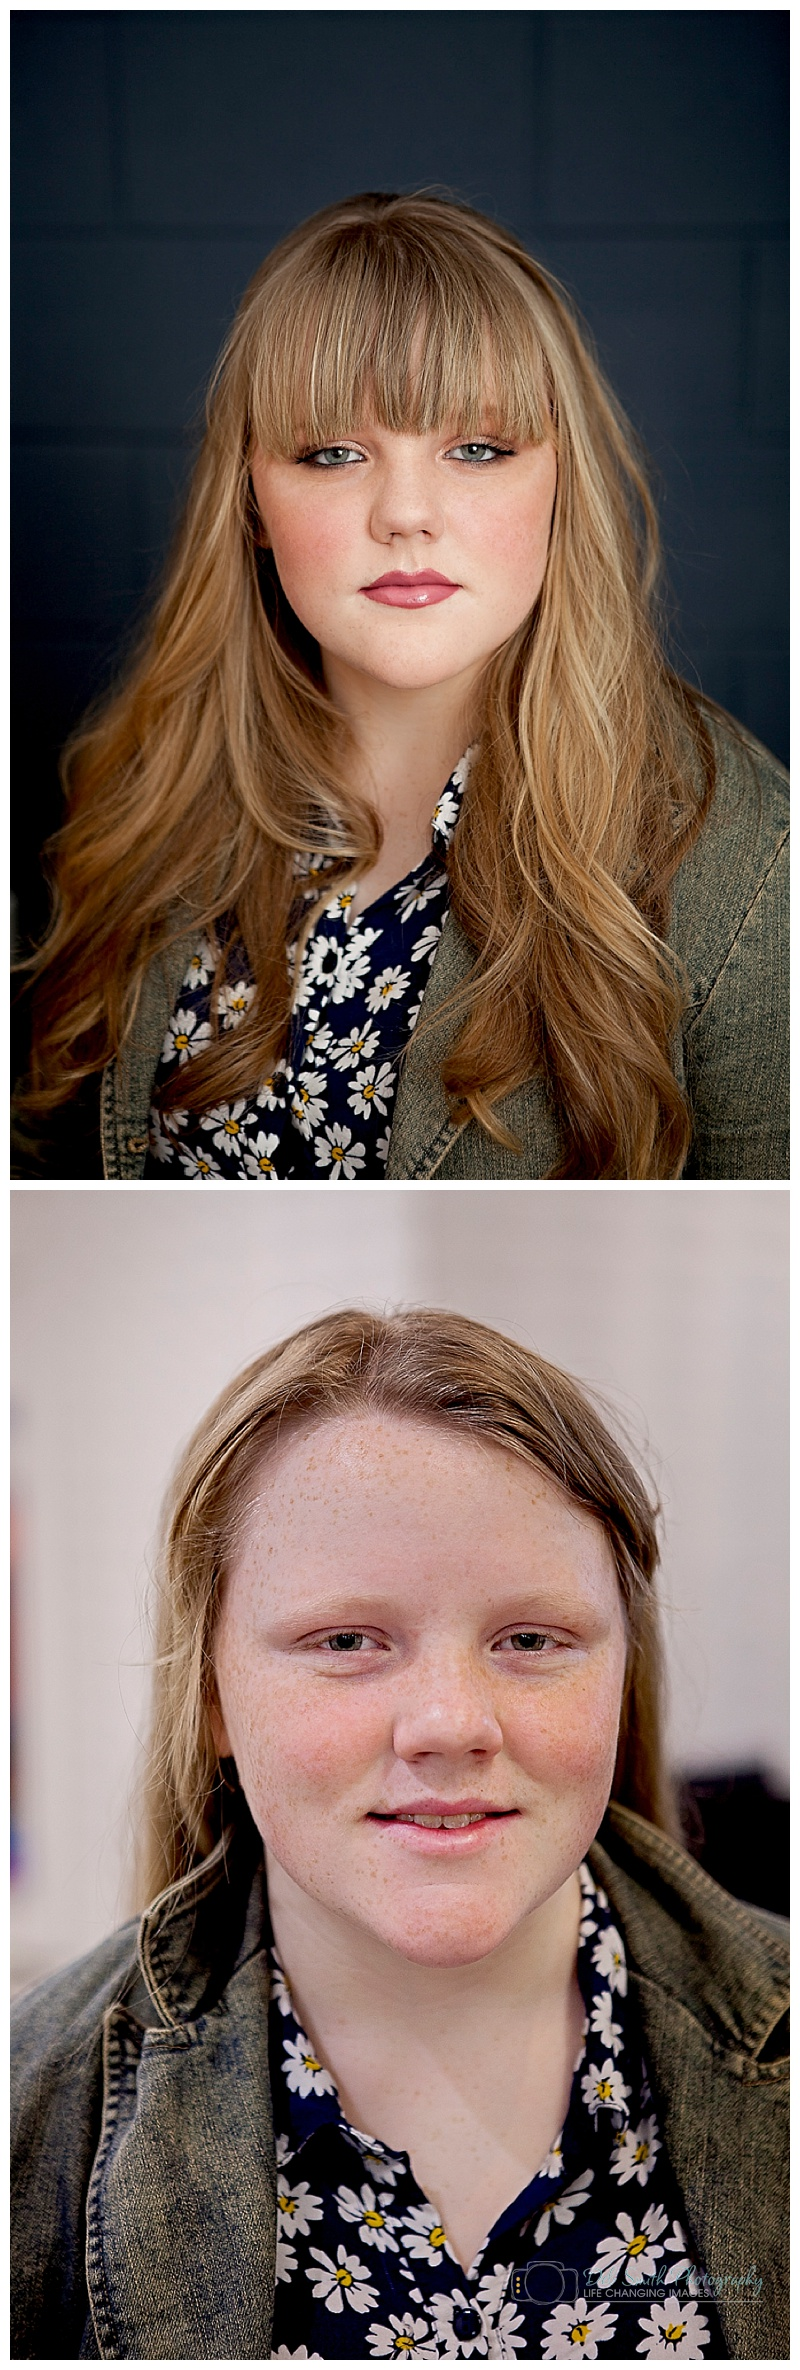 The transformation after the makeover portrait session